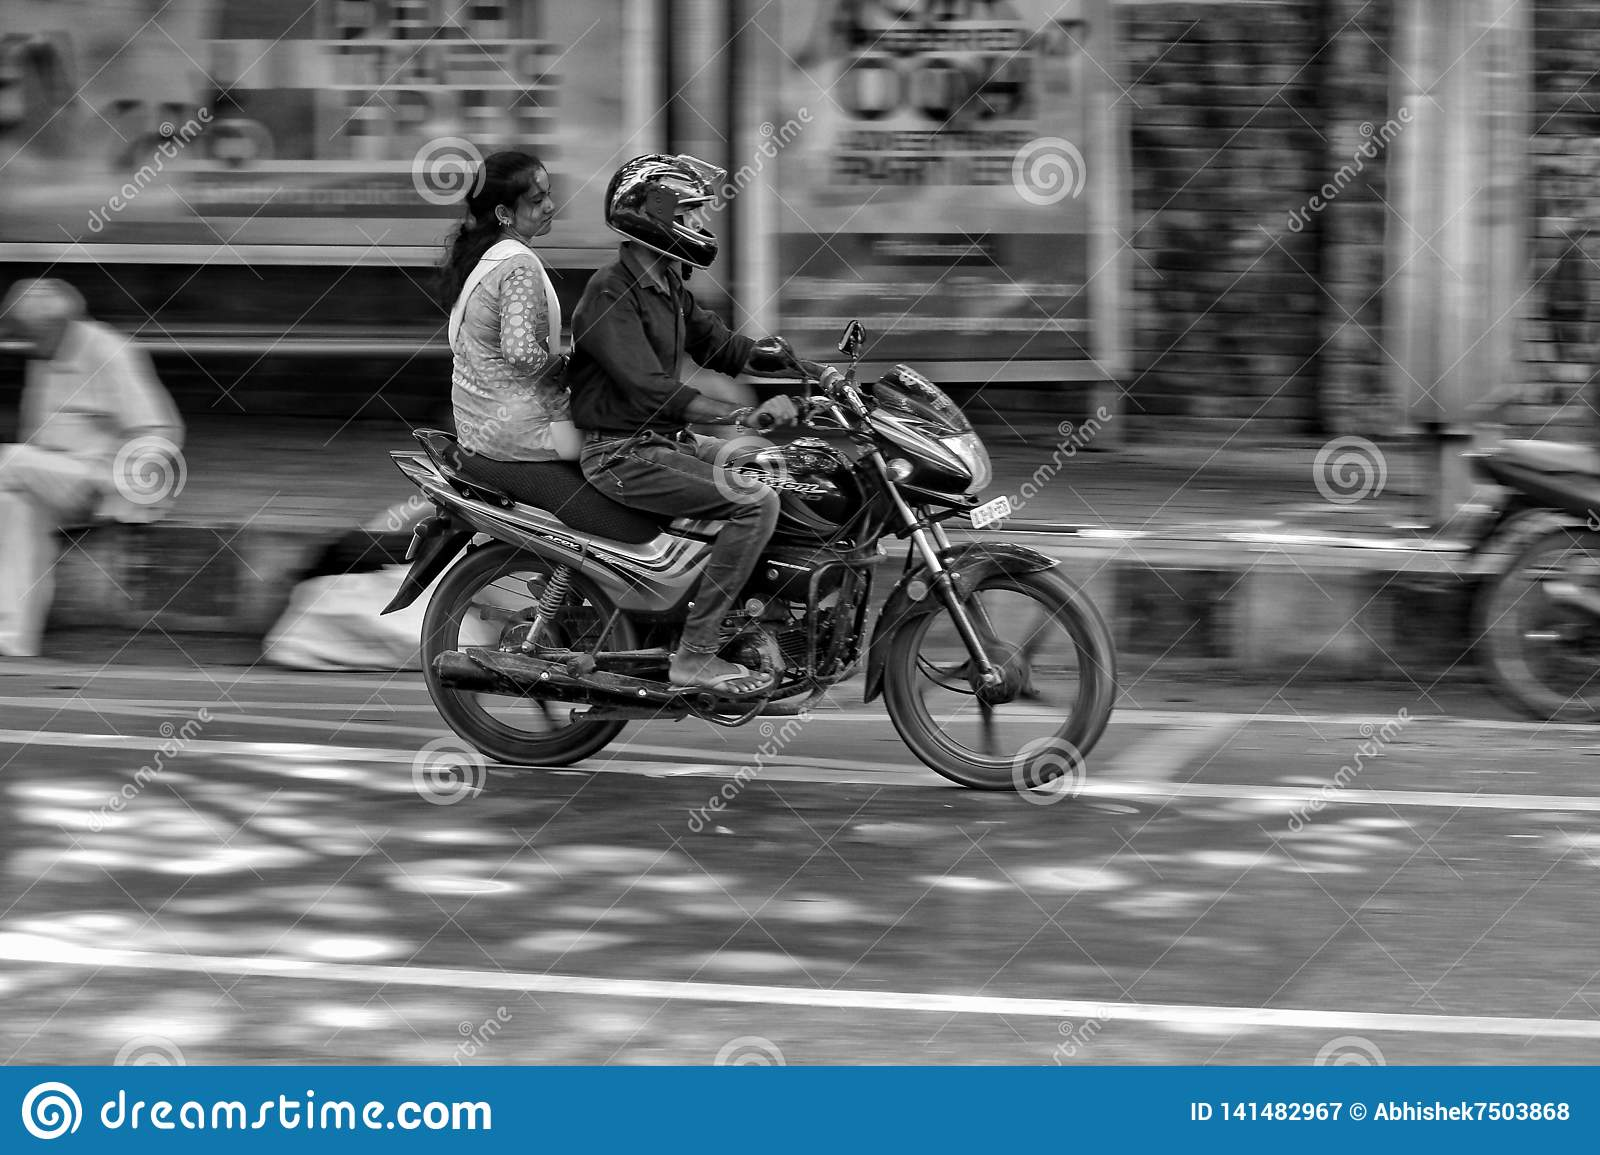 DELHI, INDIA - 17 FEBRUARY 2019: Riding on a Motorbike blurred motion